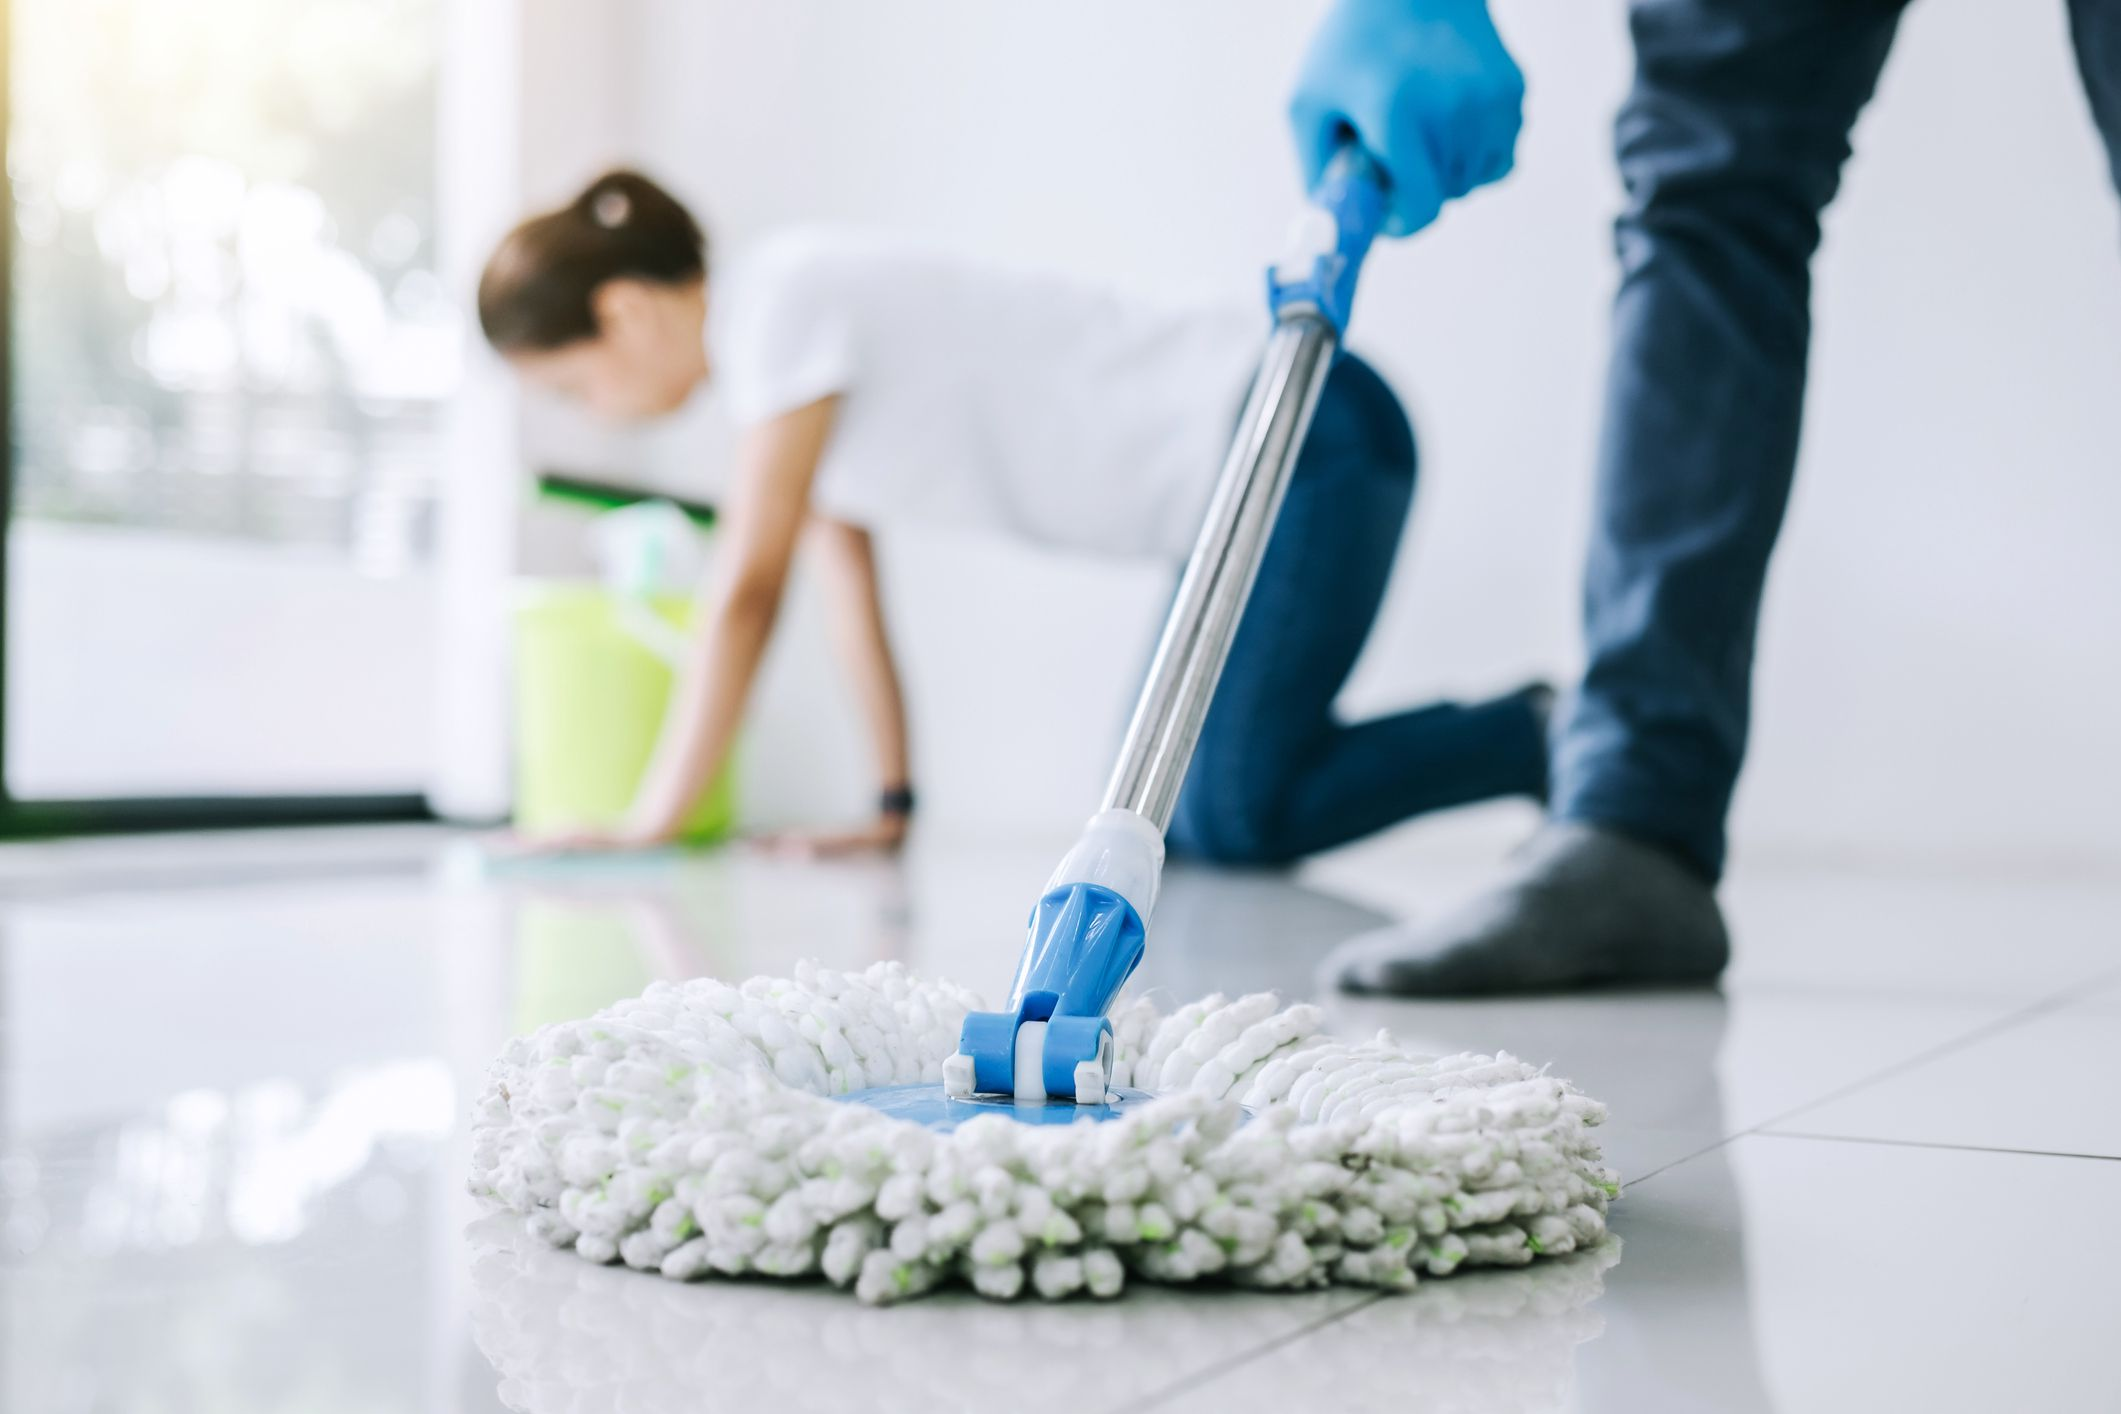 How Often Should Floors Be Mopped